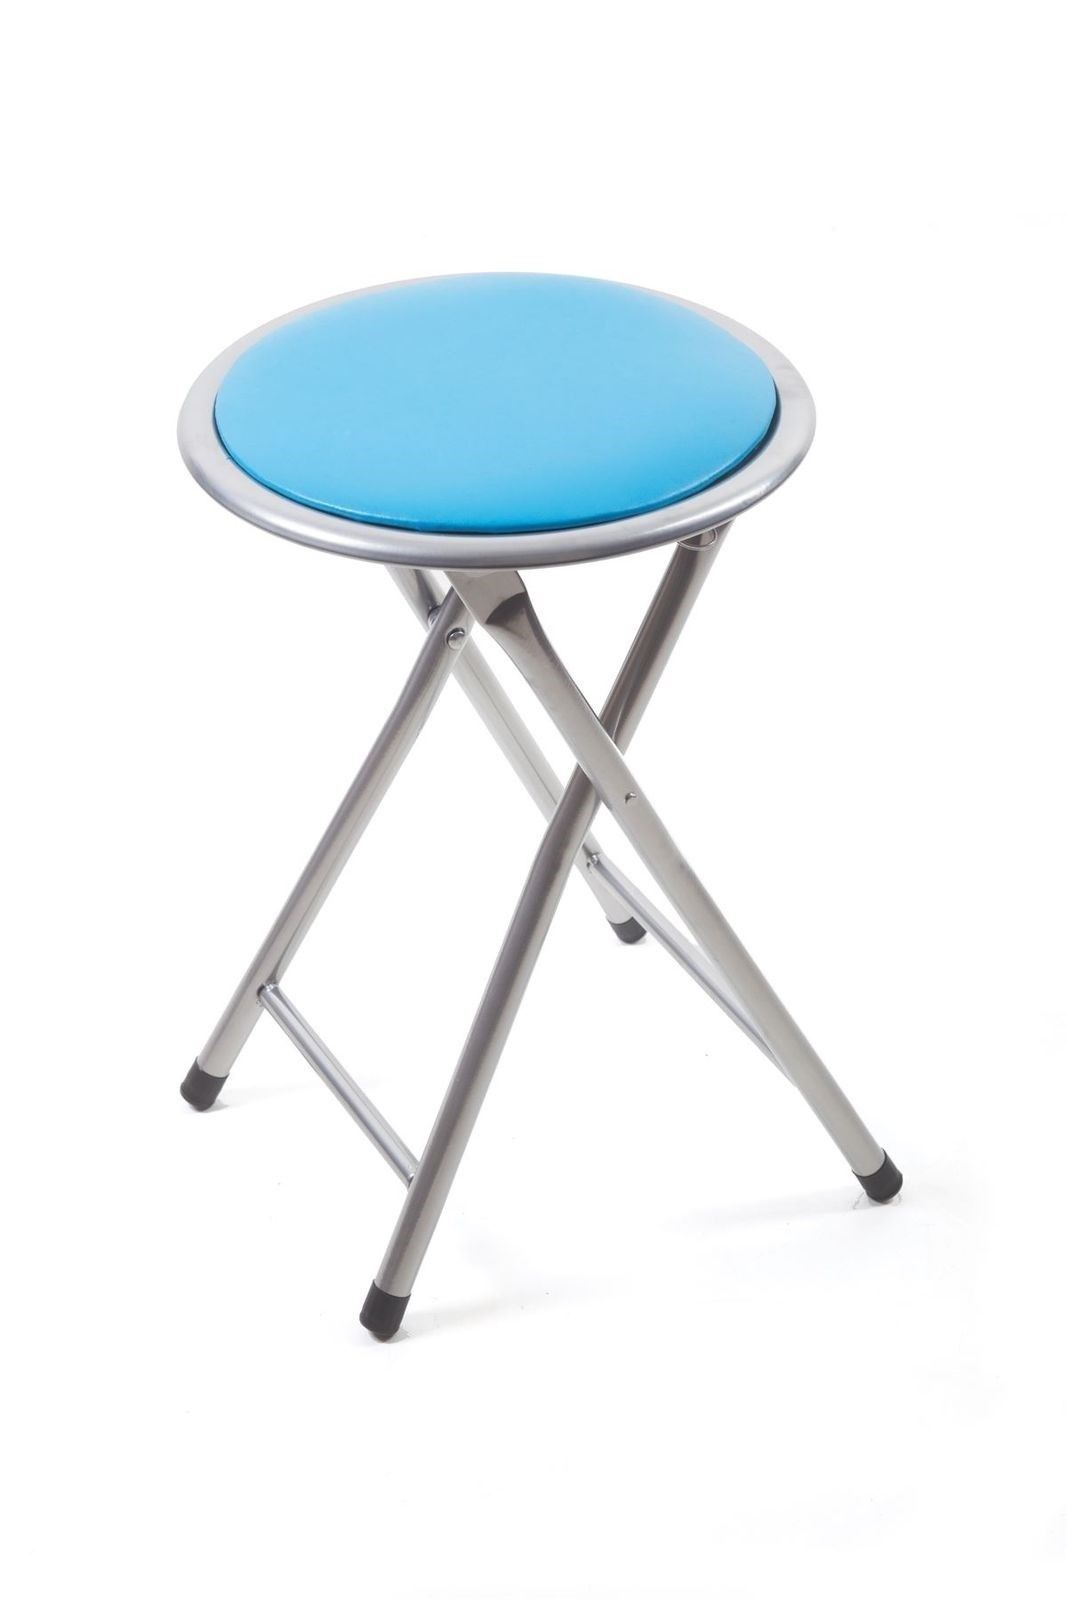 Small Fold Up Chair Details About 45cm Blue Round Folding Padded Stool Foldable Chair Small Fold Up Chairs Office